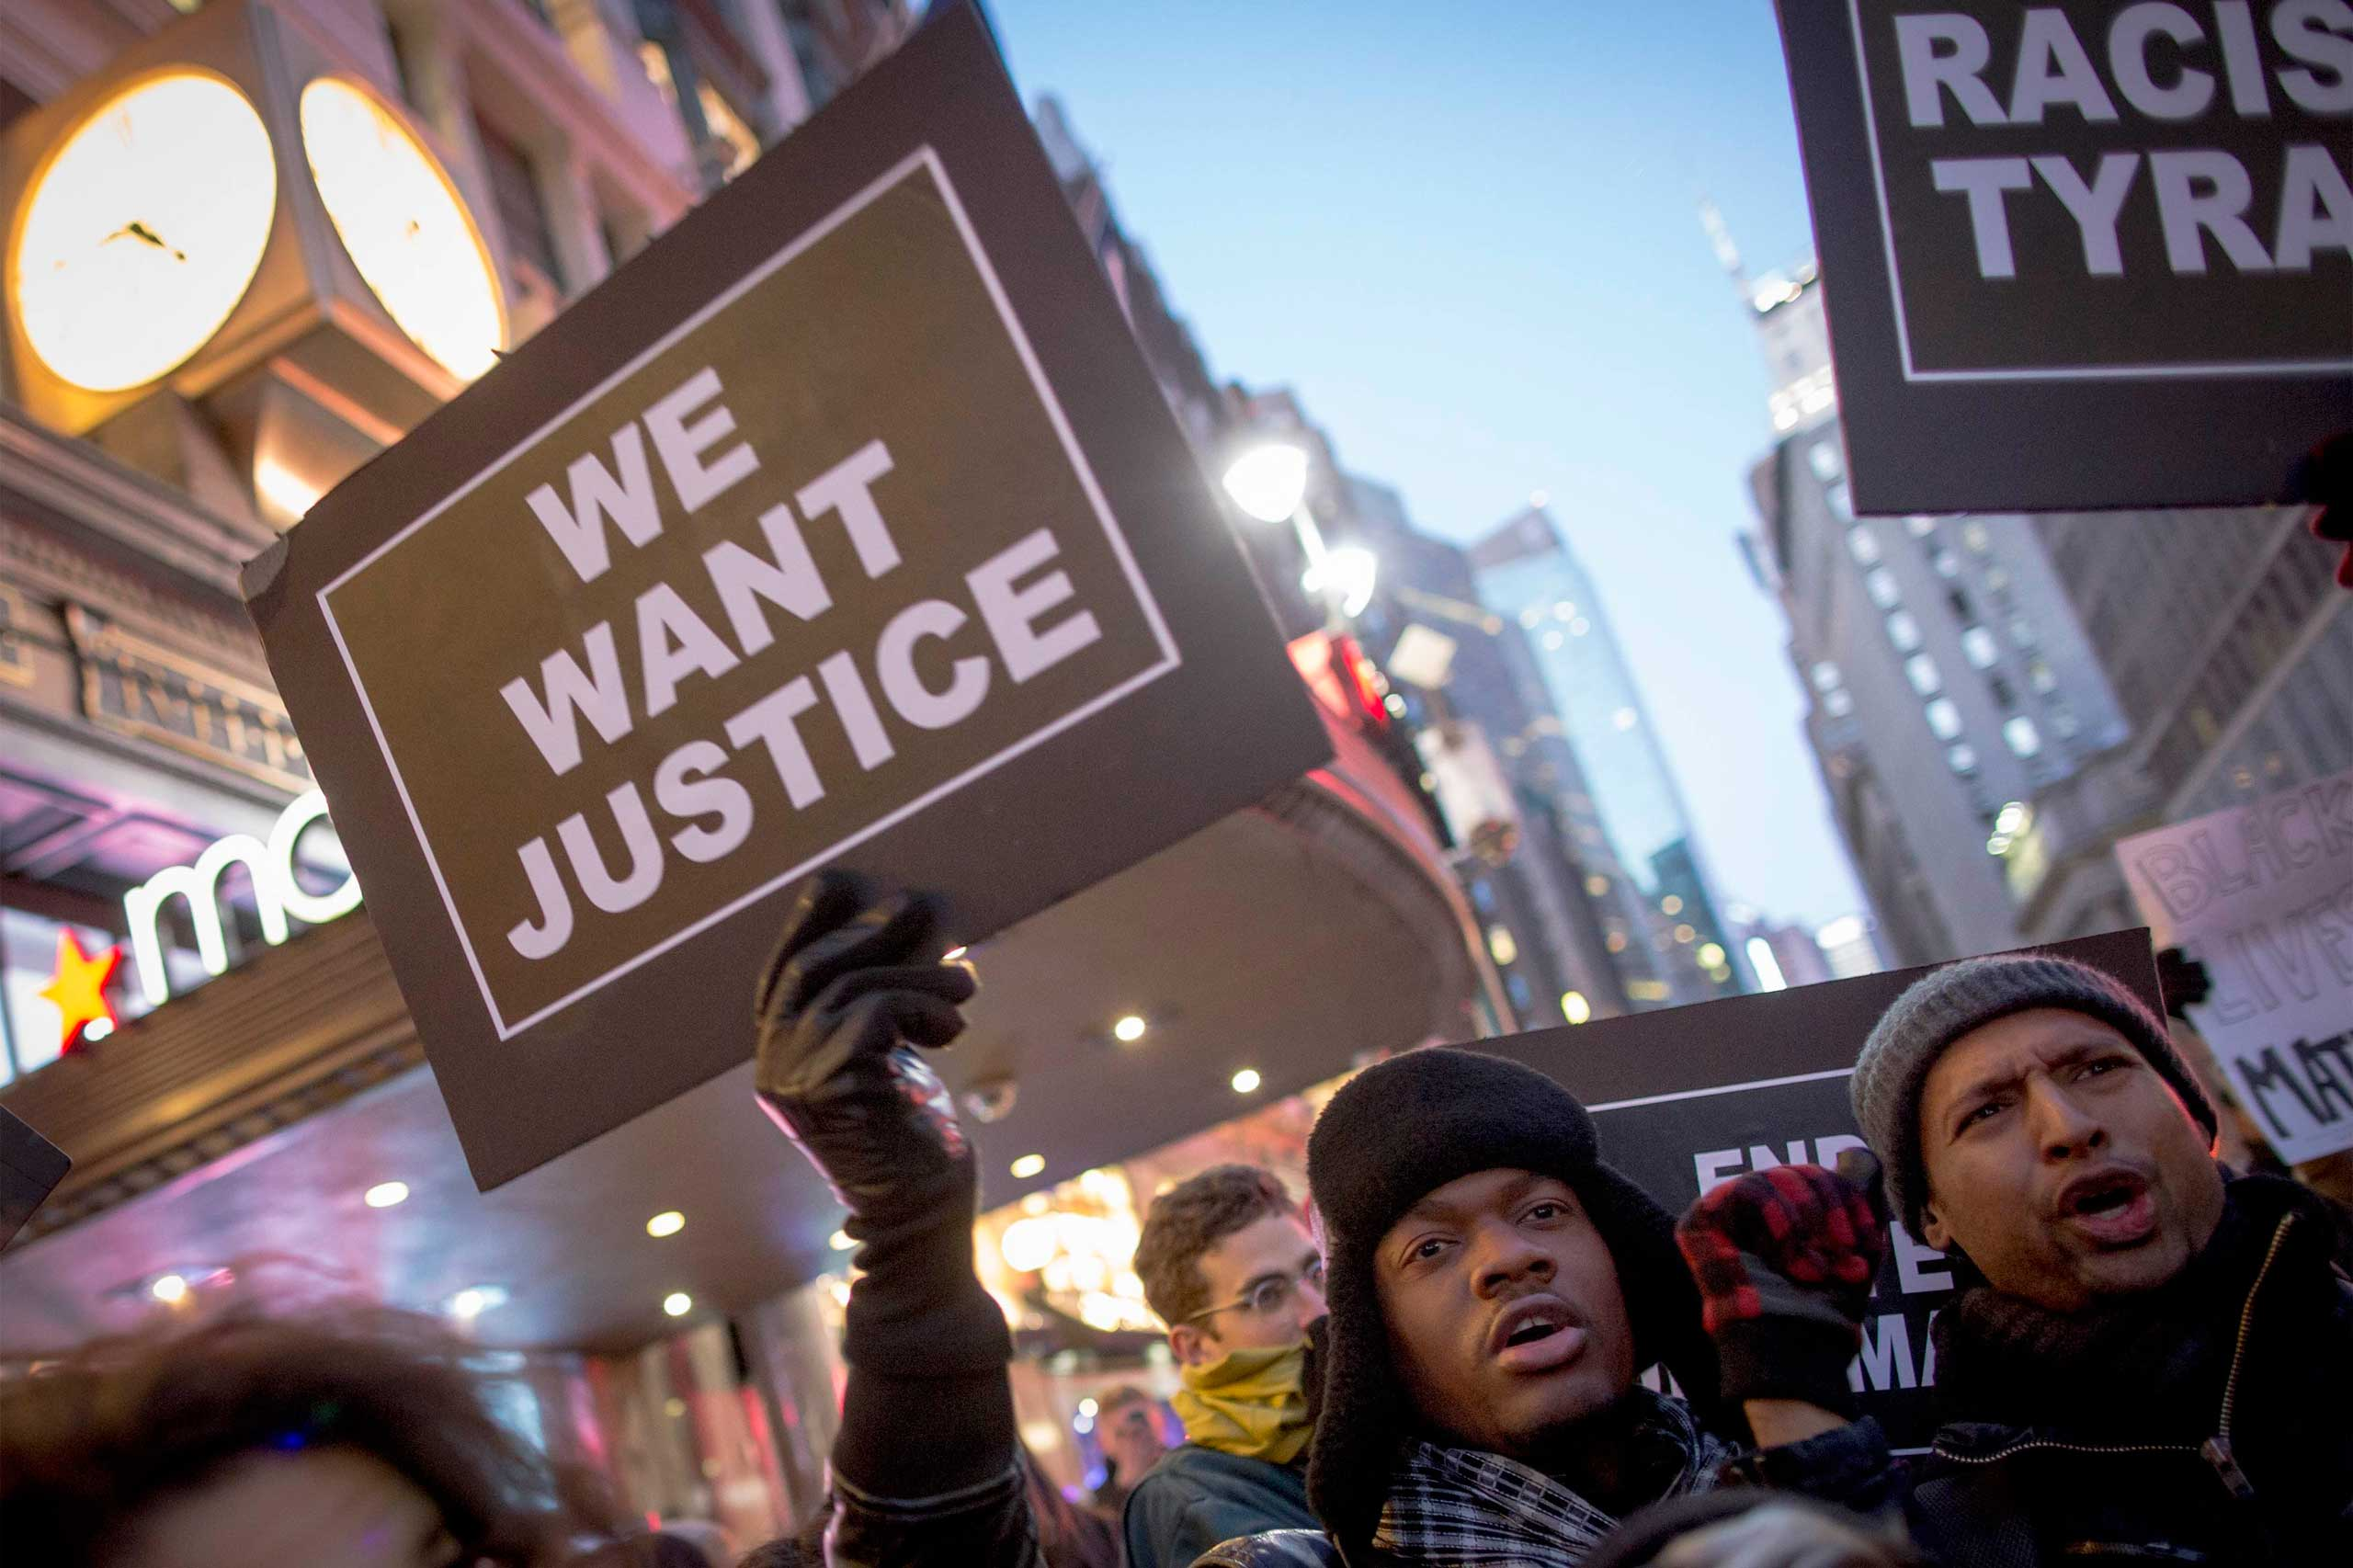 A protester holds up a sign while demonstrating against the grand jury decision in the case against Darren Wilson in Ferguson, outside of Macy's in New York City on Nov. 28, 2014.